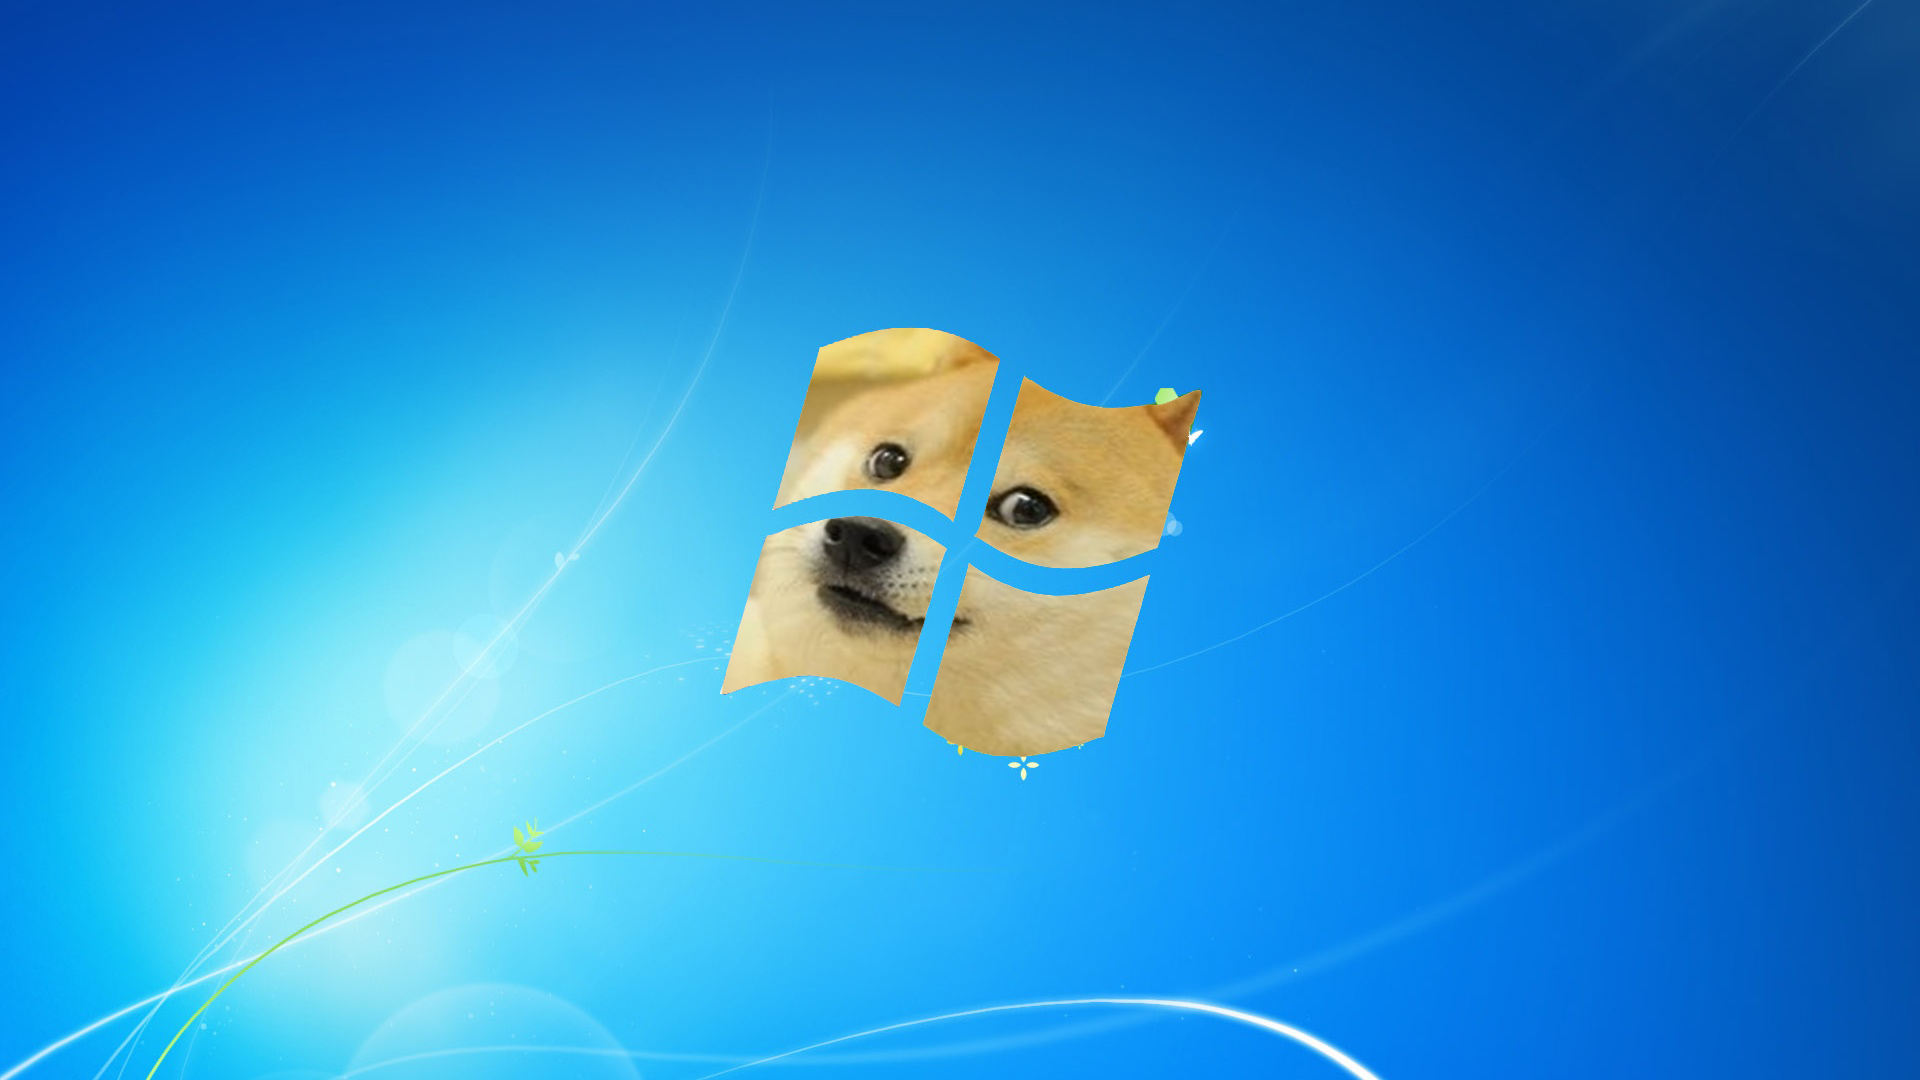 Doge Meme Wallpaper Wallpapersafari